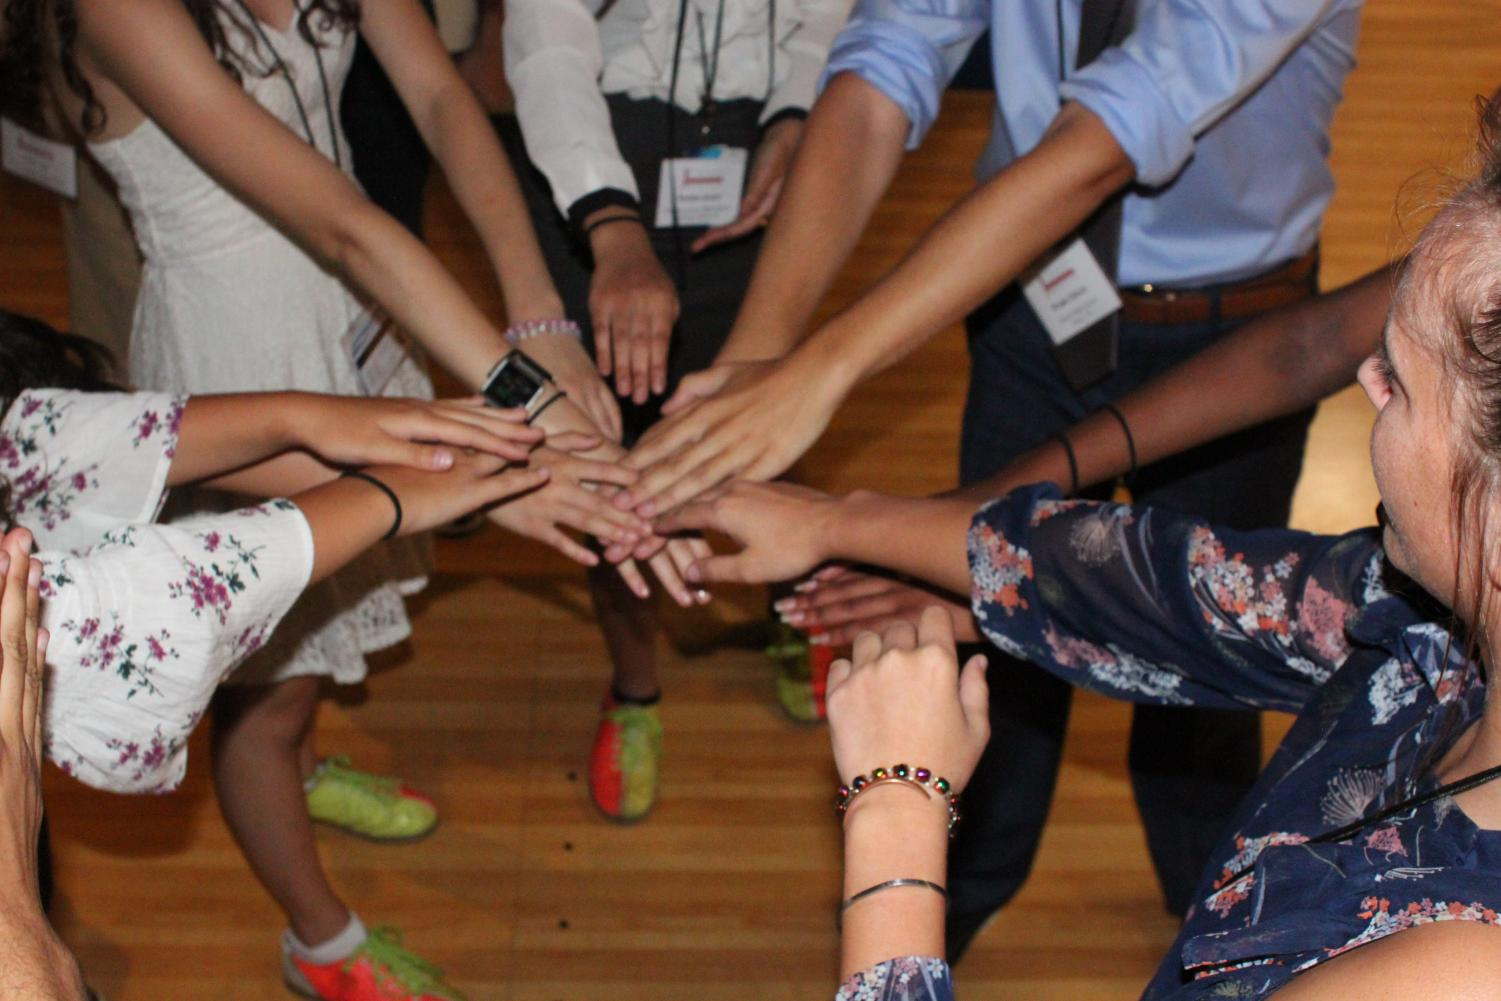 JCamp participants formed special bonds during the Detroit event, which ran July 30-Aug. 4